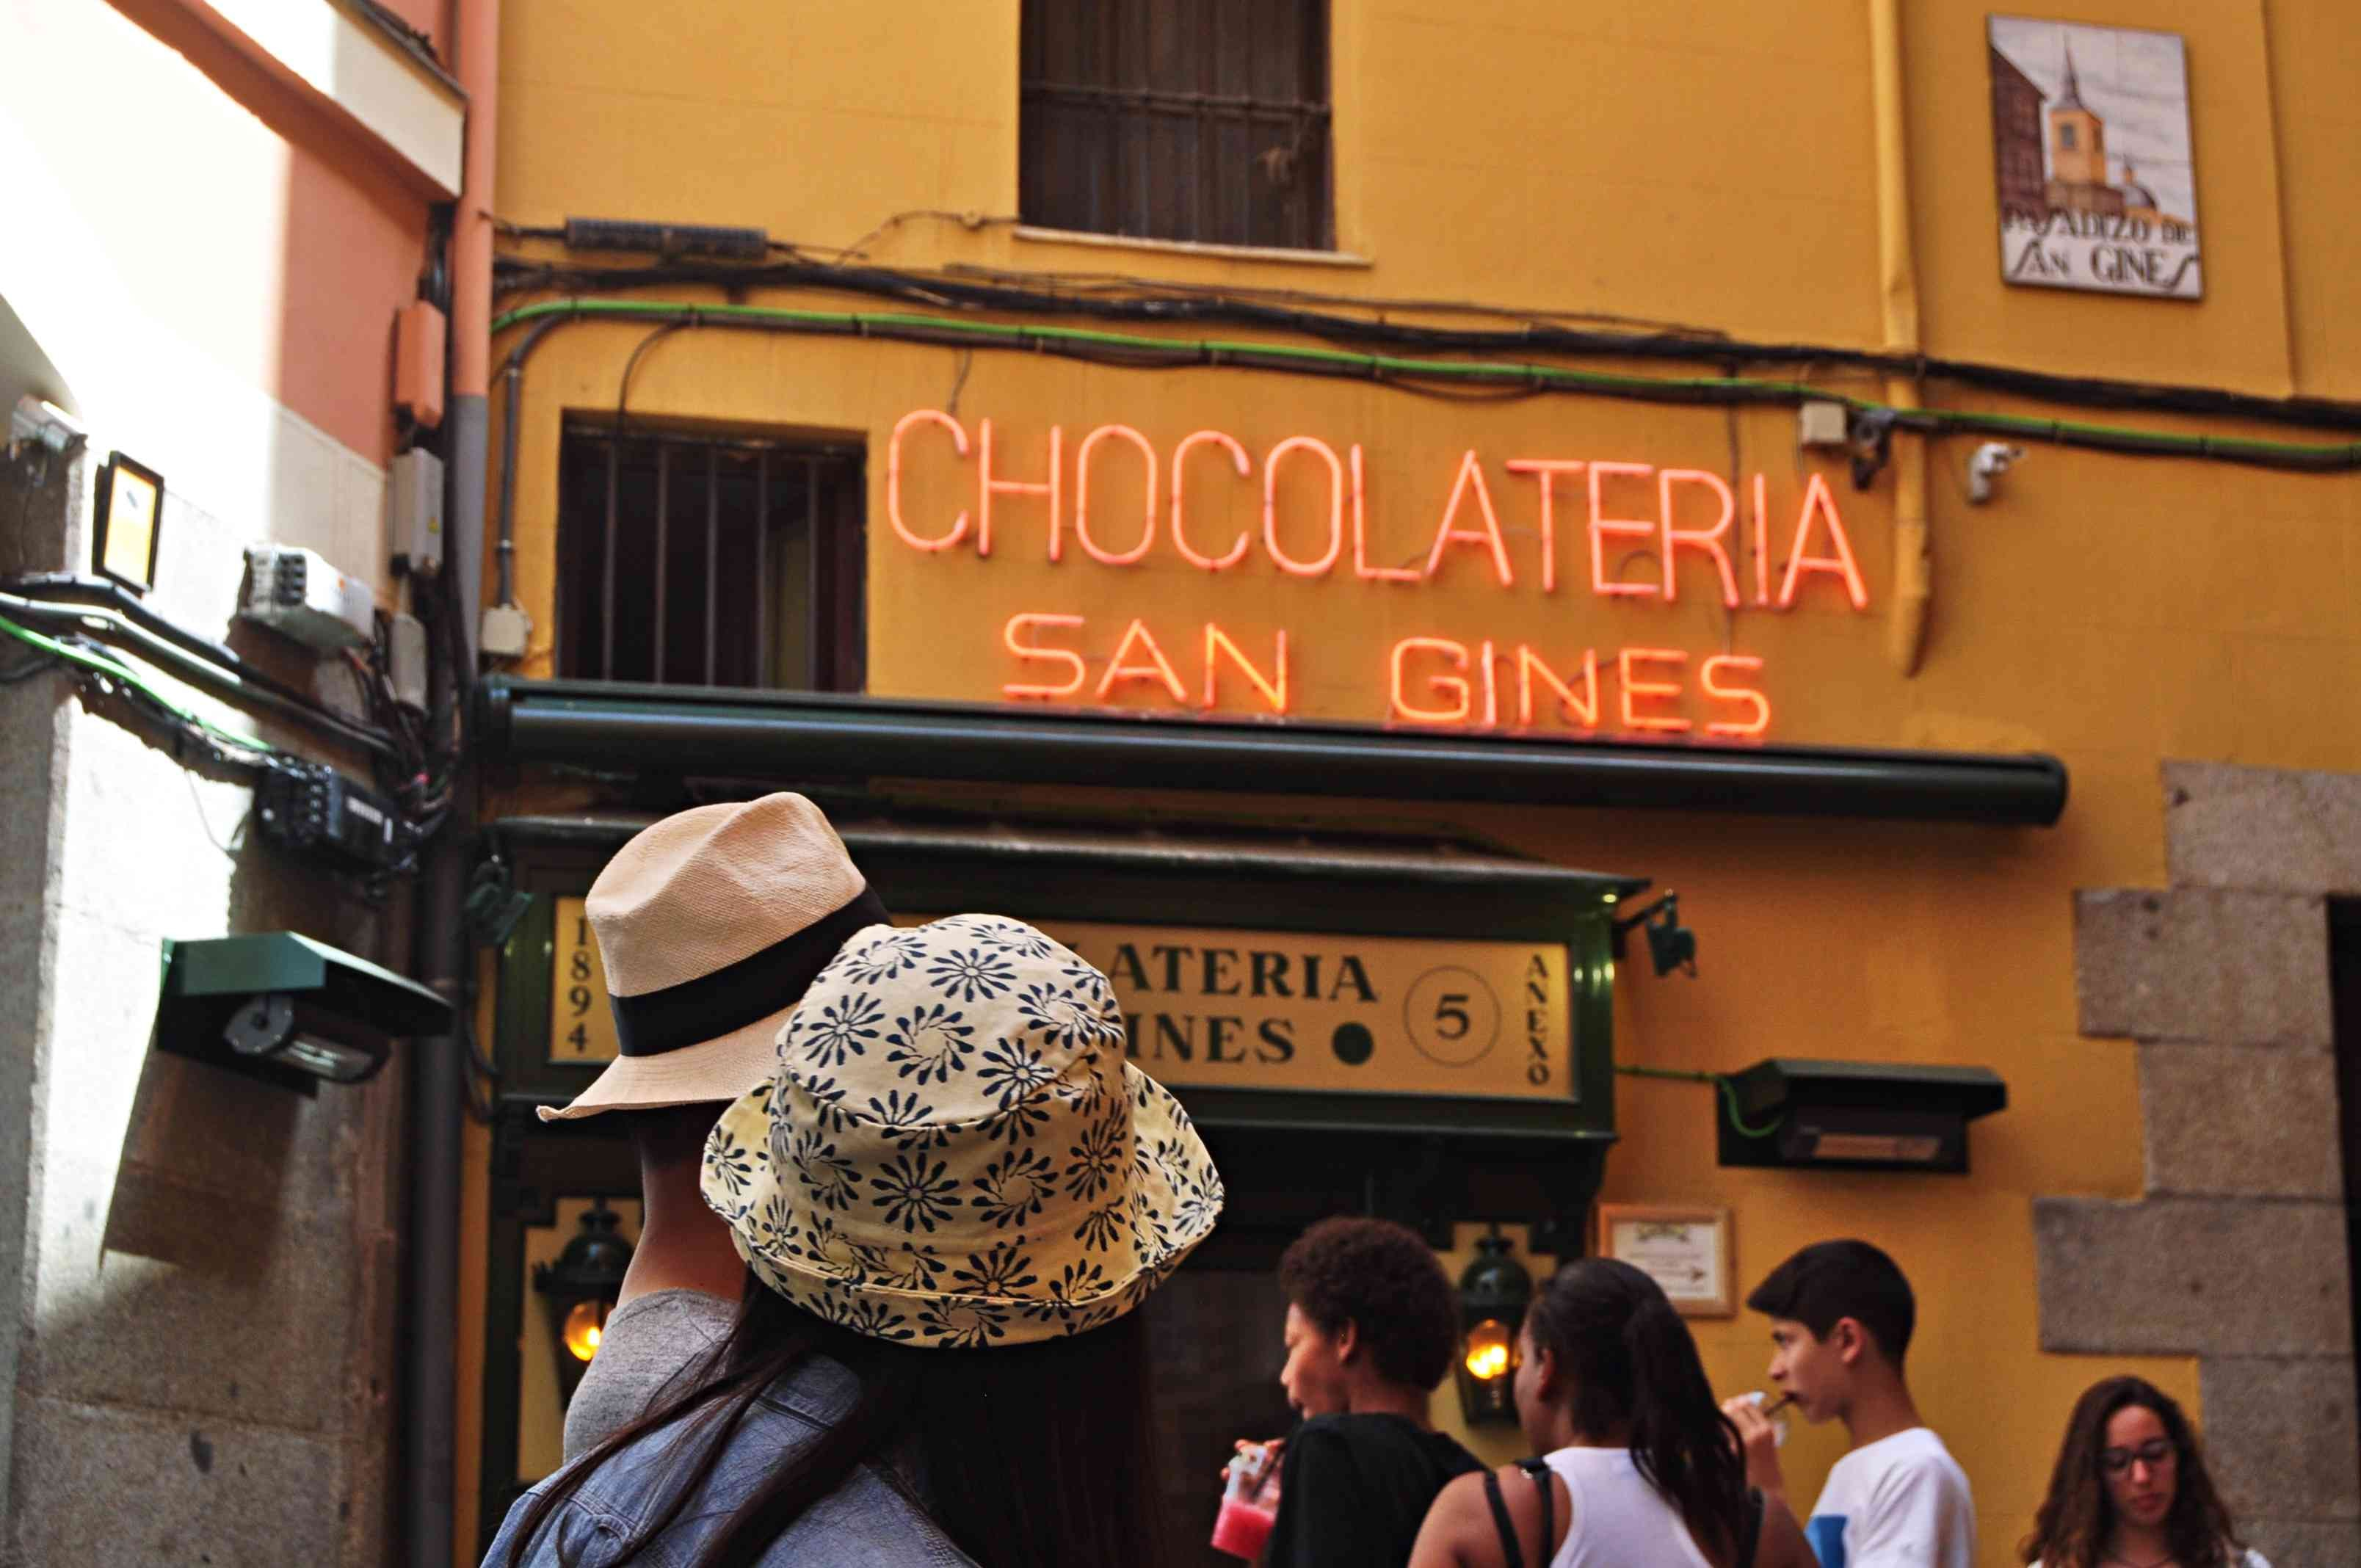 people standing at Chocolateria San Gines building